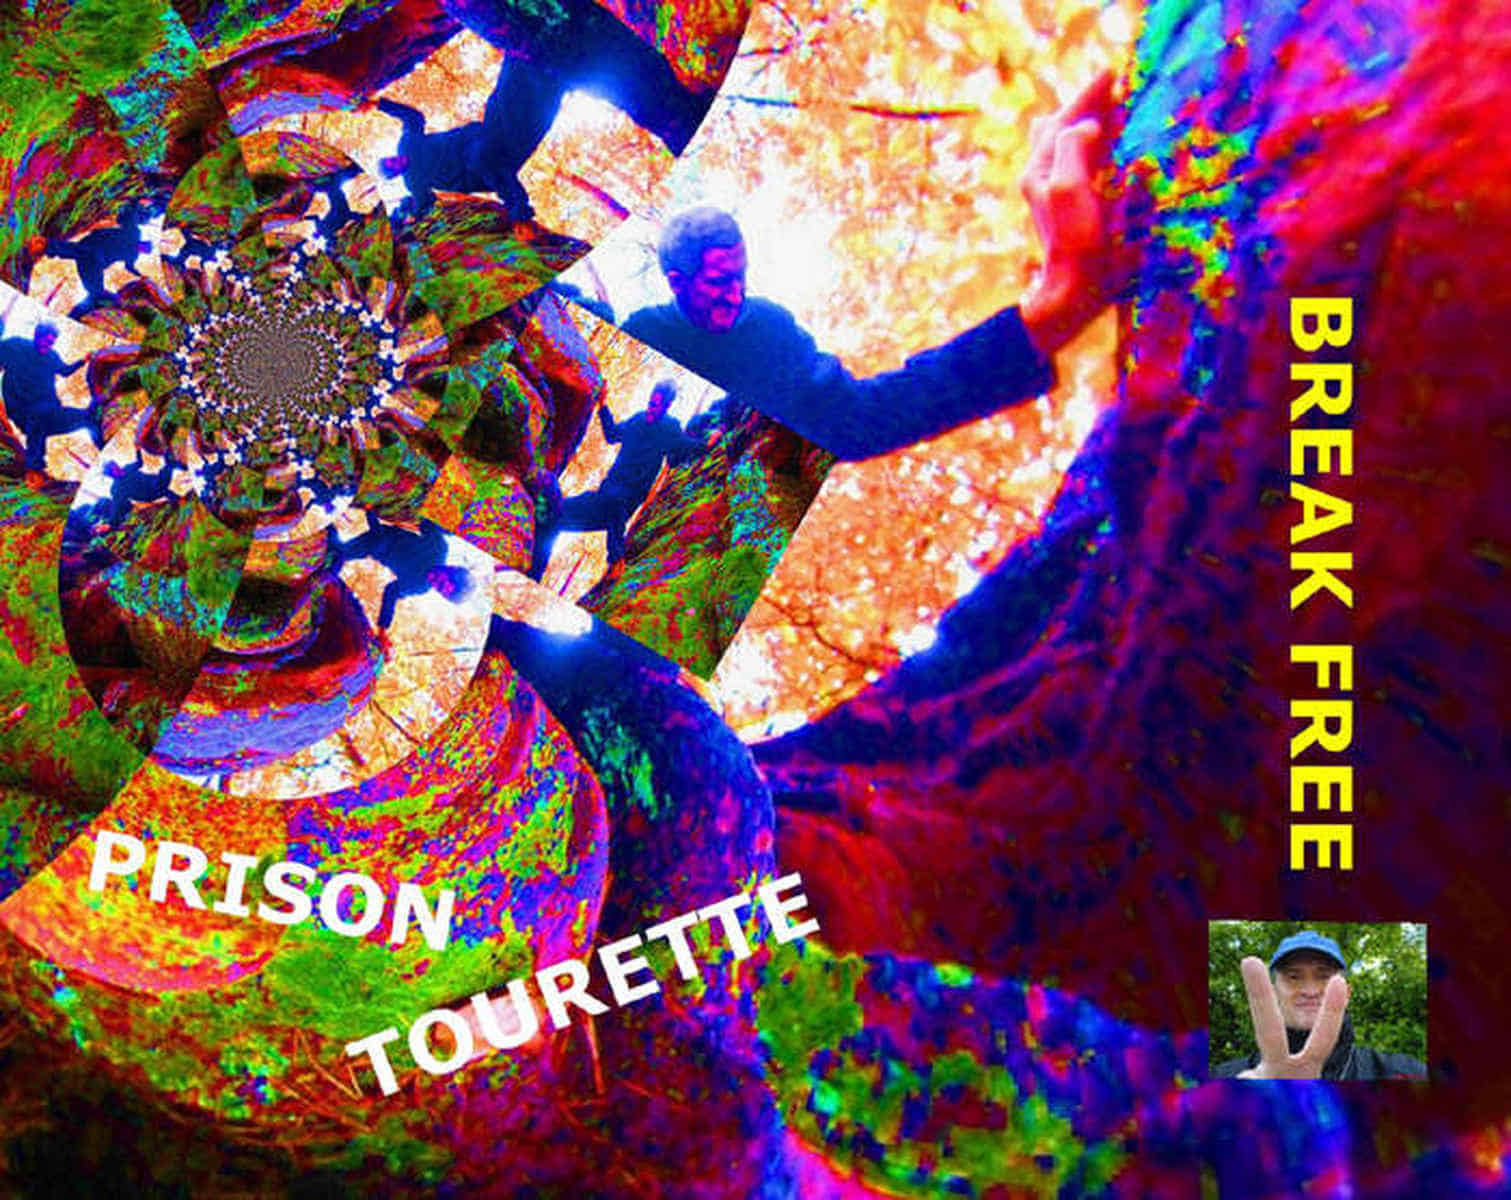 Grafik: Postkarte 05: Prison Tourette --- Break Free.